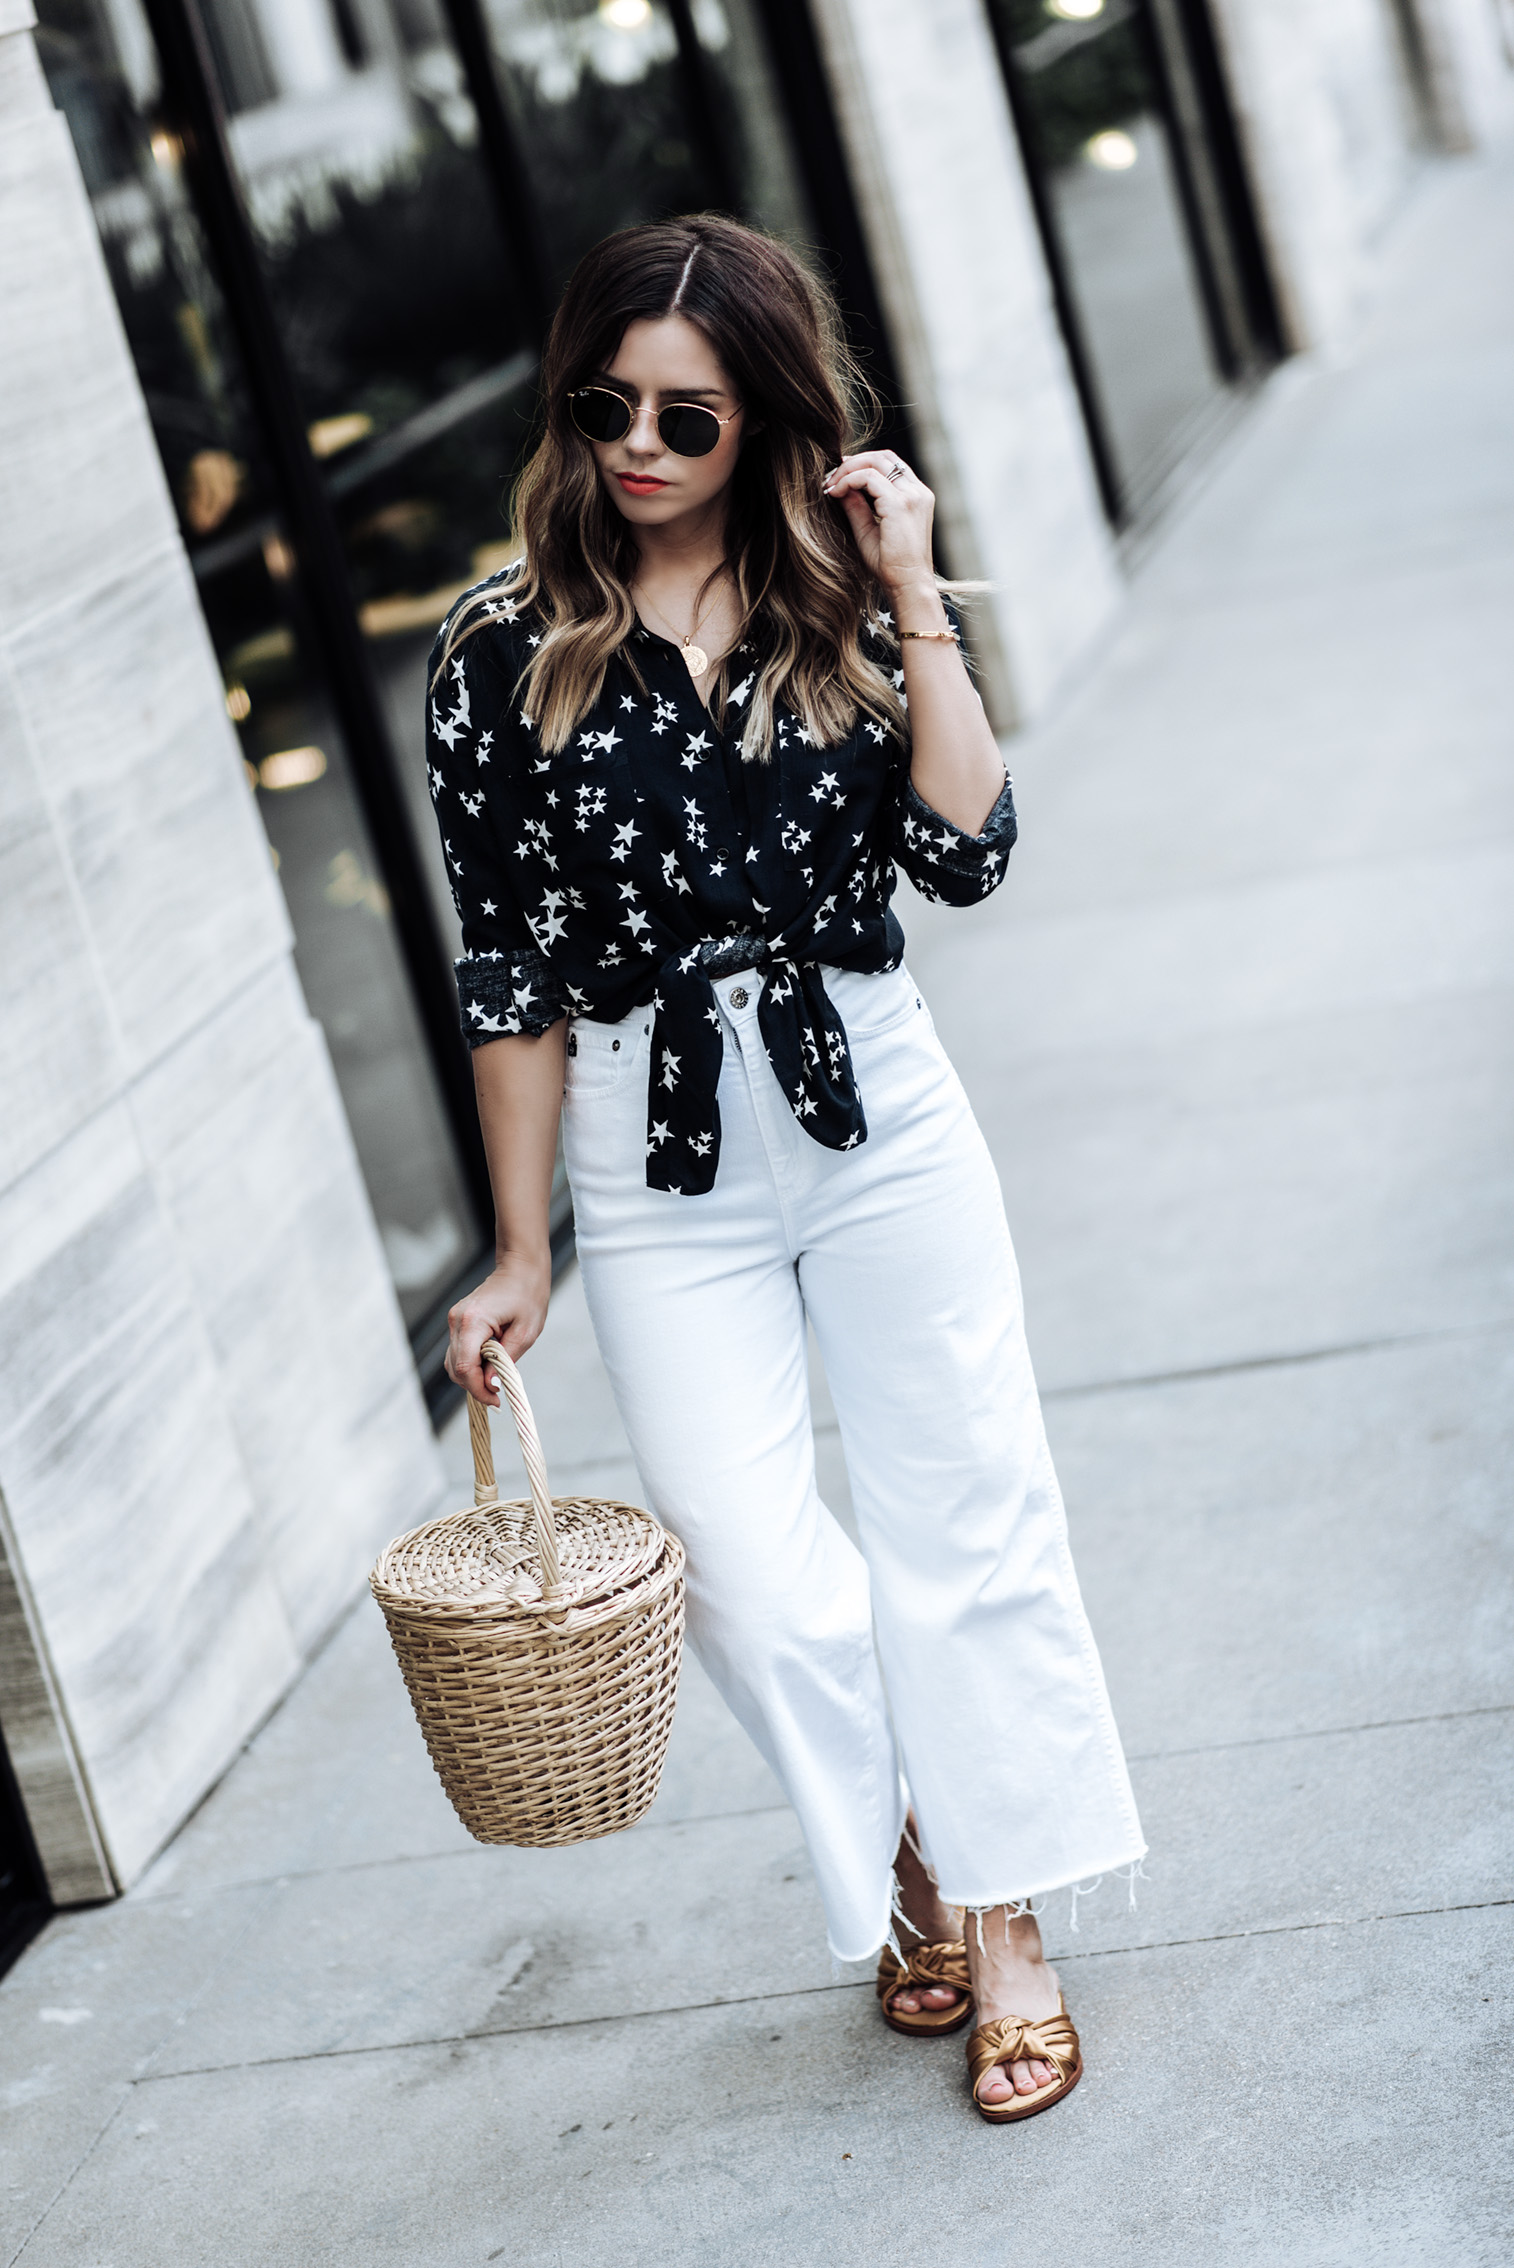 Houston fashion and lifestyle blogger Tiffany Jais | {C/O} The Yvette wide leg pant by AG Jeans | Straw basket bag | Sincerely Jules Ryder shirt | Mini Marie pendant | Satin bow slides (similar here)